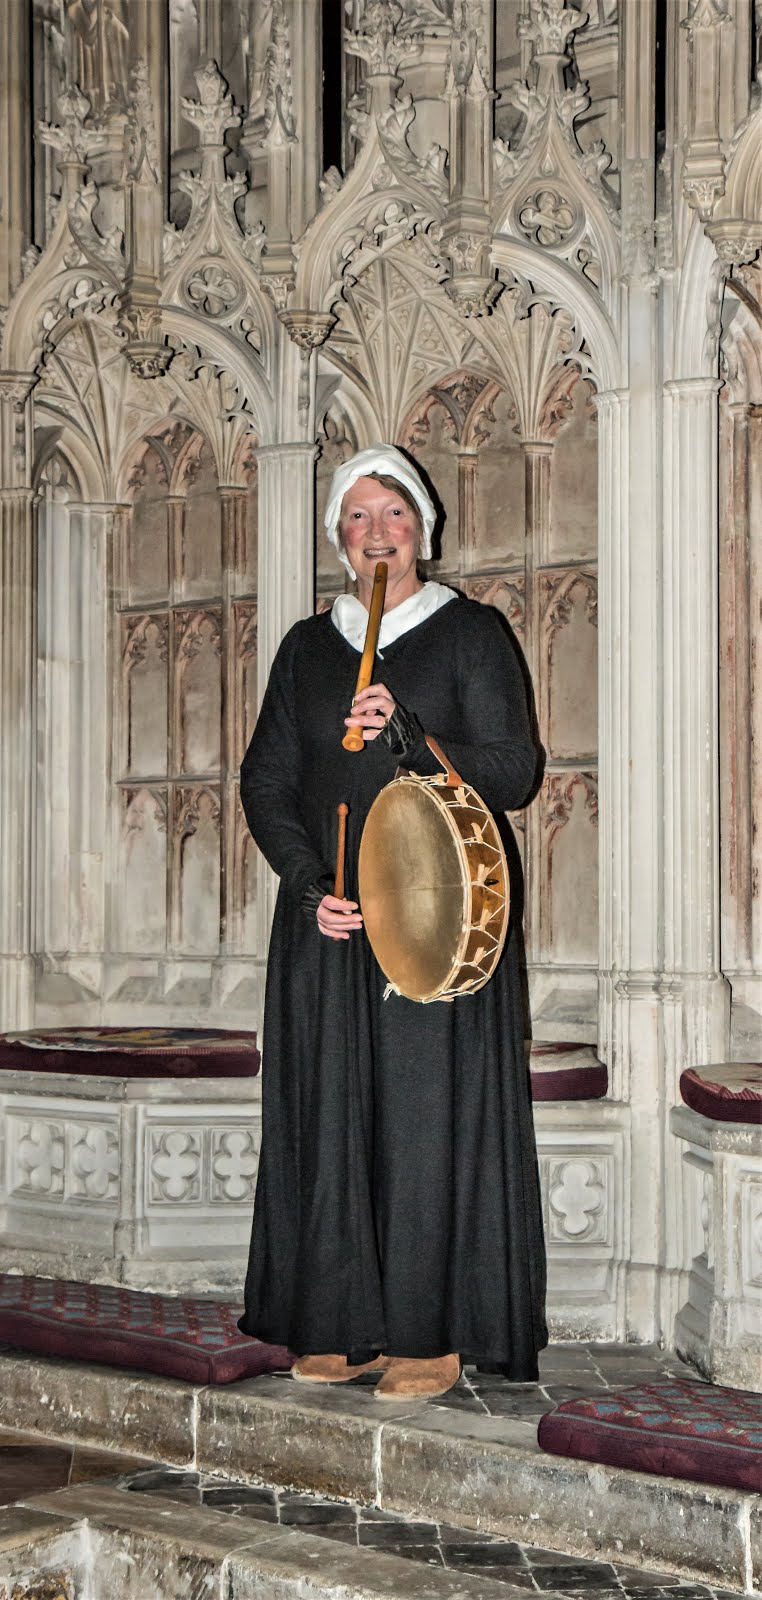 Mediaeval music in Gloucester cathedral